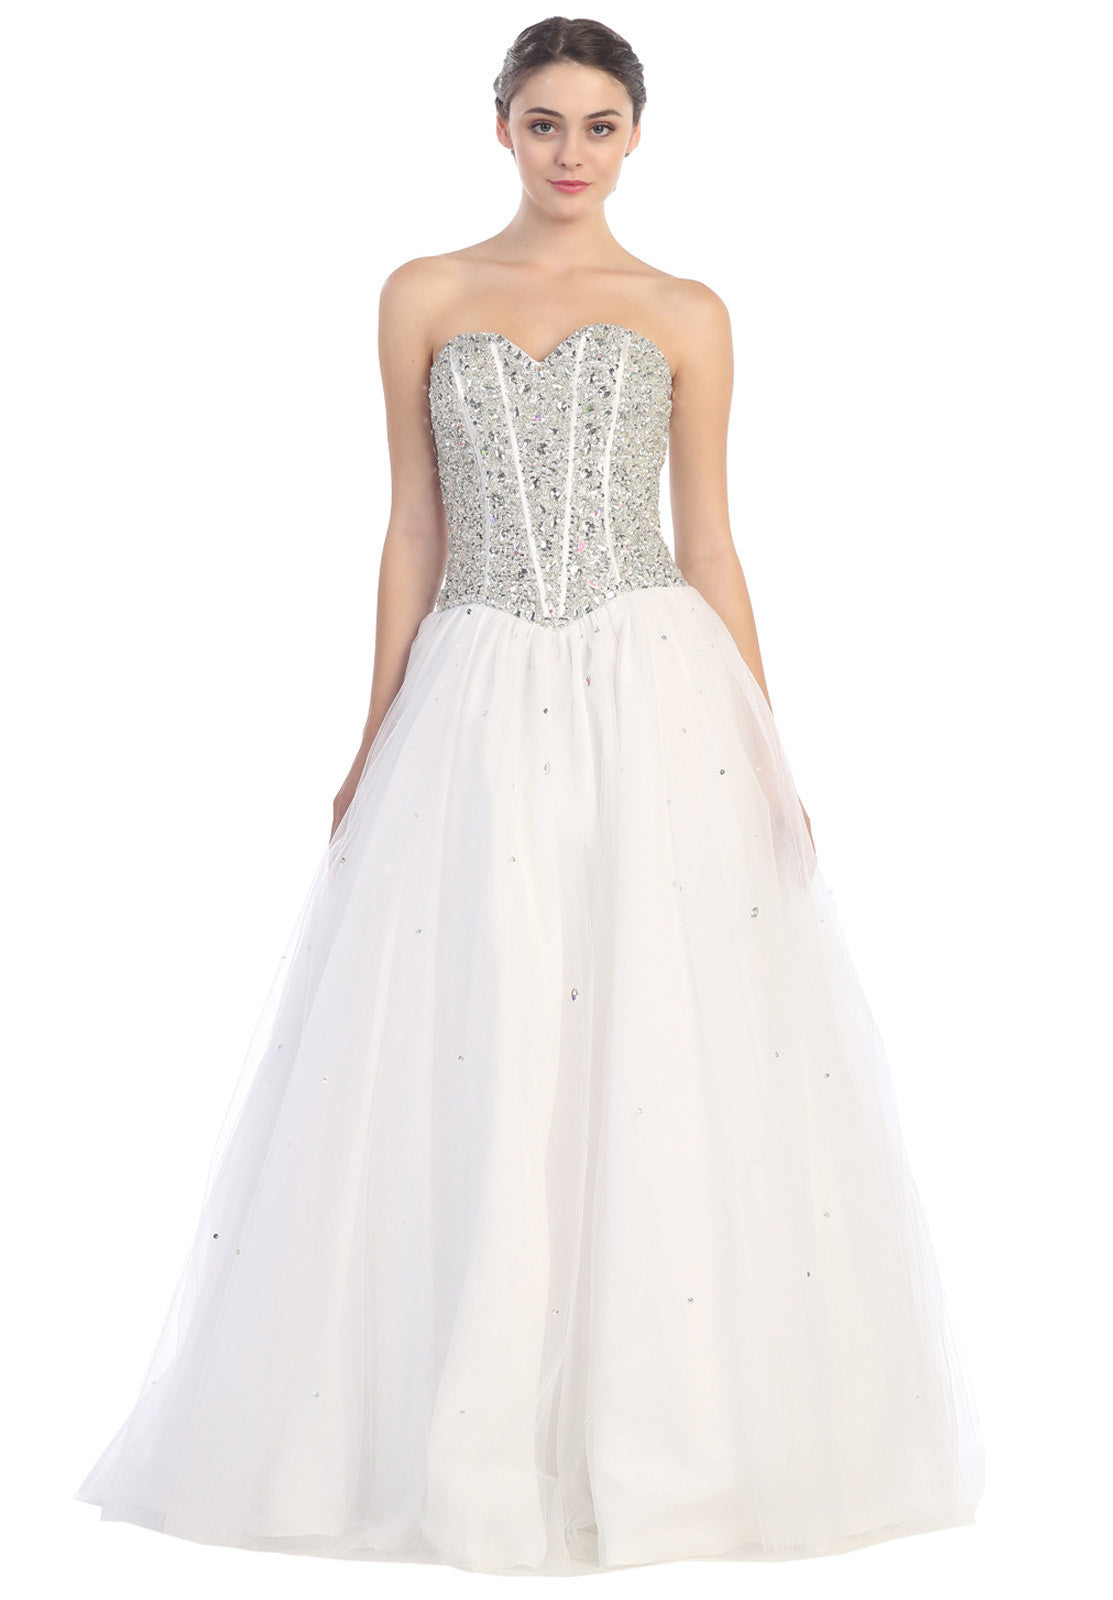 Beaded Corset Bodice Long Strapless White Princess Gown